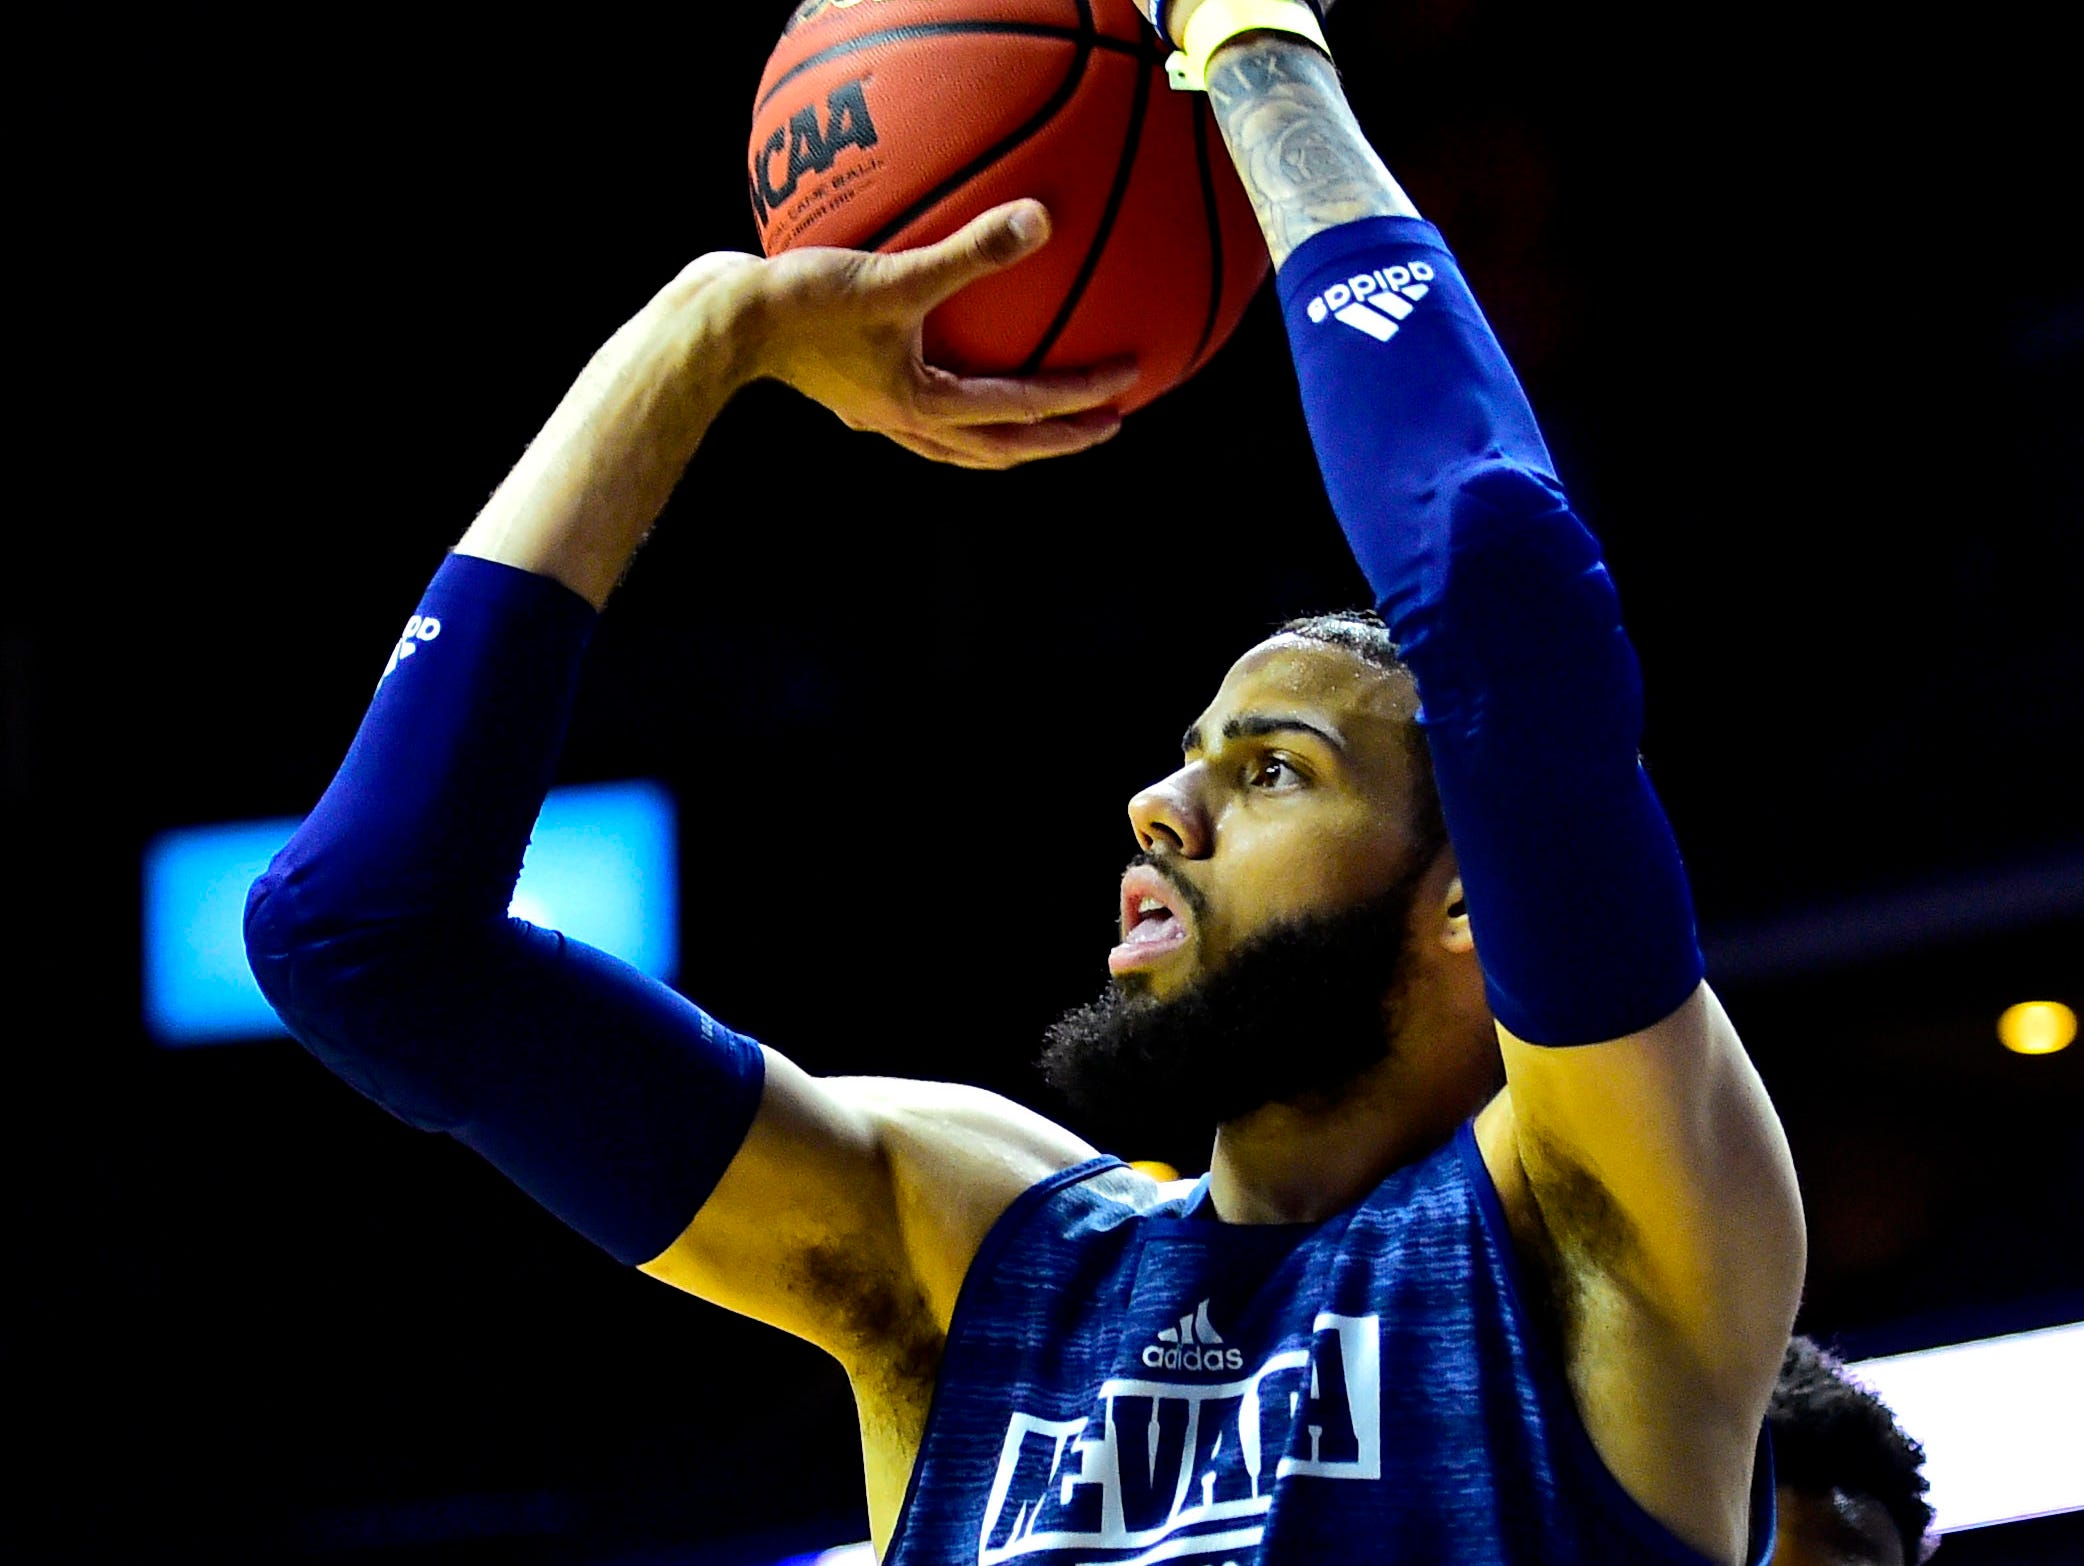 Mar 20, 2019; Des Moines, IA, USA; Nevada Wolf Pack forward Cody Martin (11) shoots the ball during practice before the first round of the 2019 NCAA Tournament at Wells Fargo Arena. Mandatory Credit: Jeffrey Becker-USA TODAY Sports